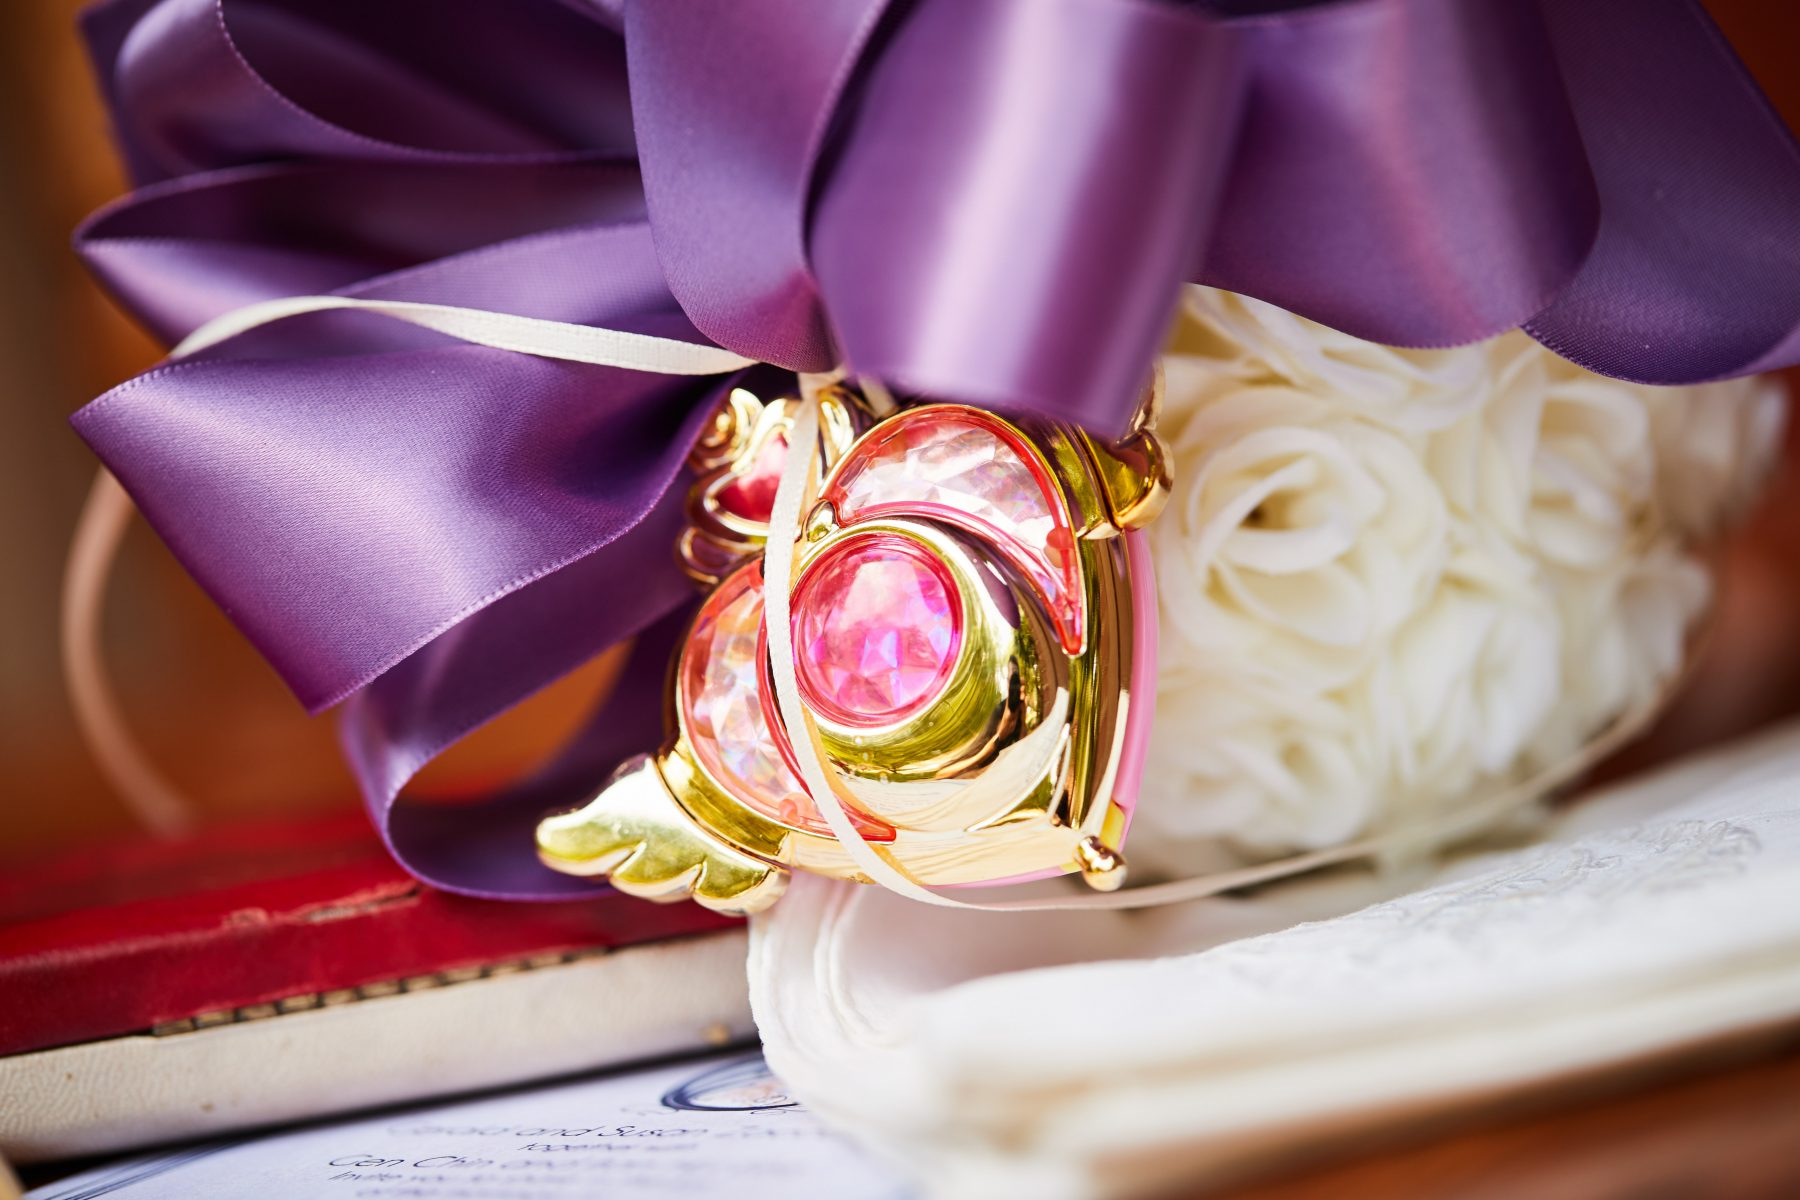 the crisis compact hangs on a white flower ball with a purple ribbon